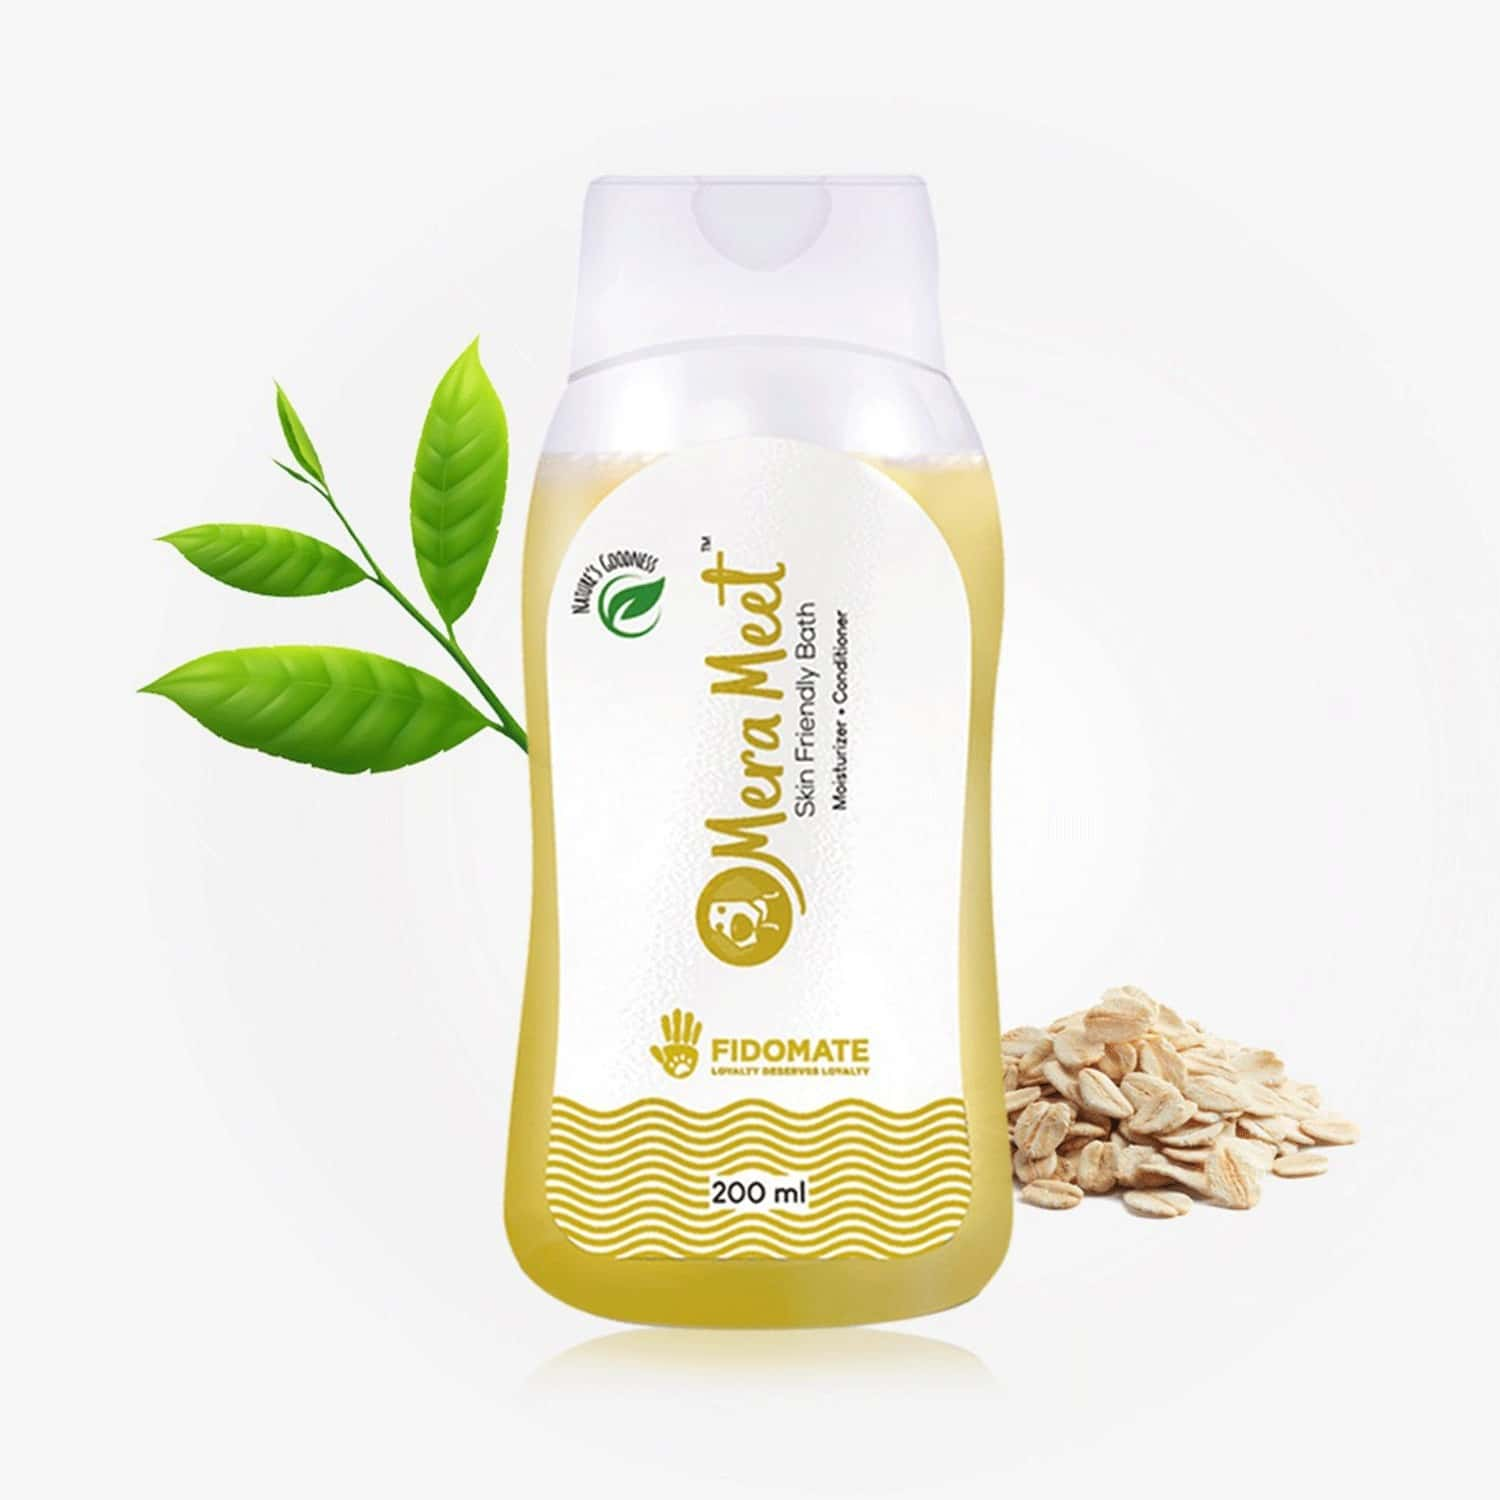 Fidomate Merameet Tea Tree Shampoo For Dogs,maintains Overall Skin Health- Paraben & Sulphate Free